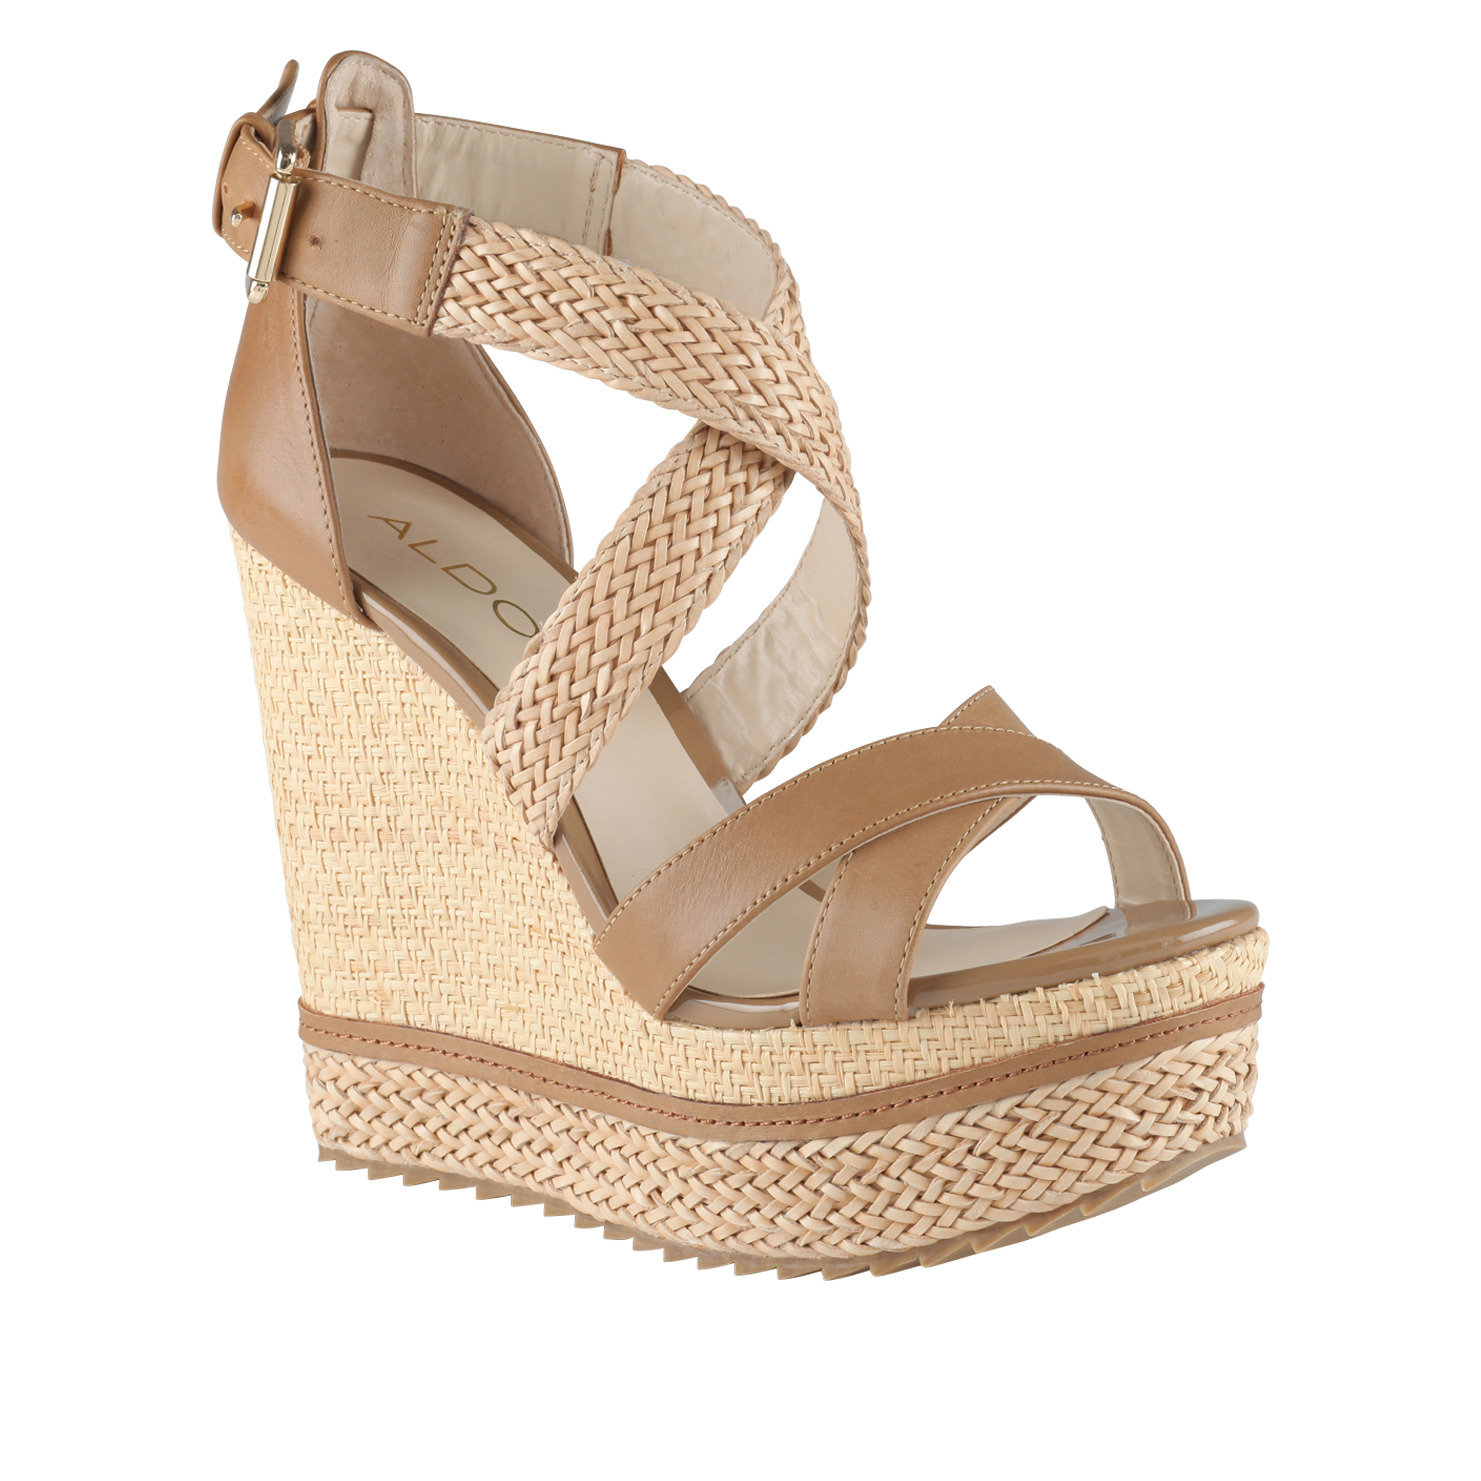 glicher s wedges sandals for sale from aldo epic